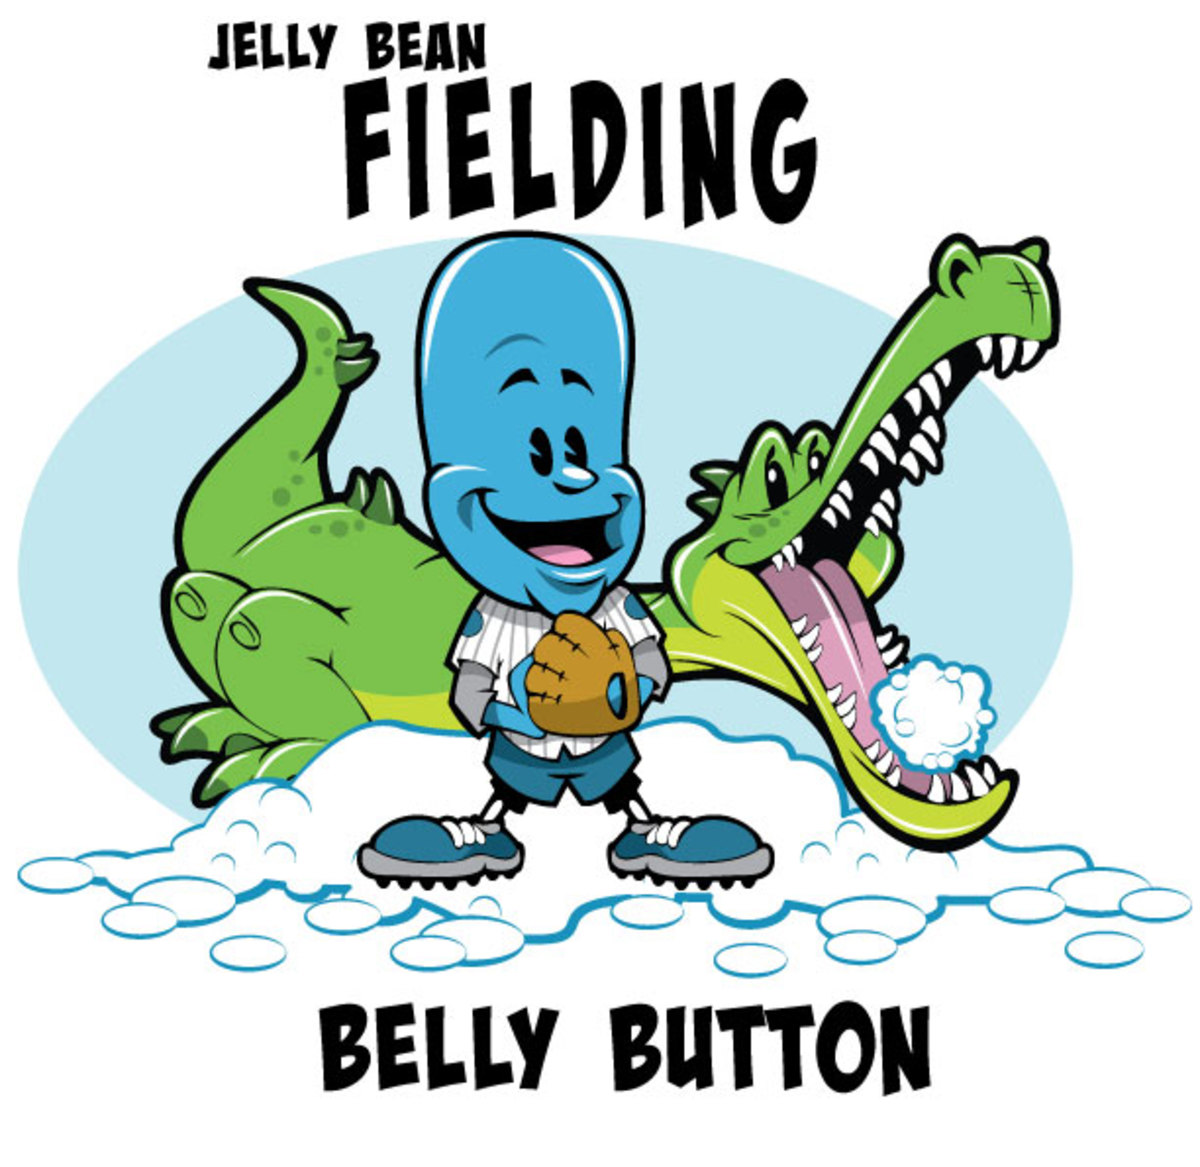 Jelly Bean touching his belly button and alligator eating a snowball